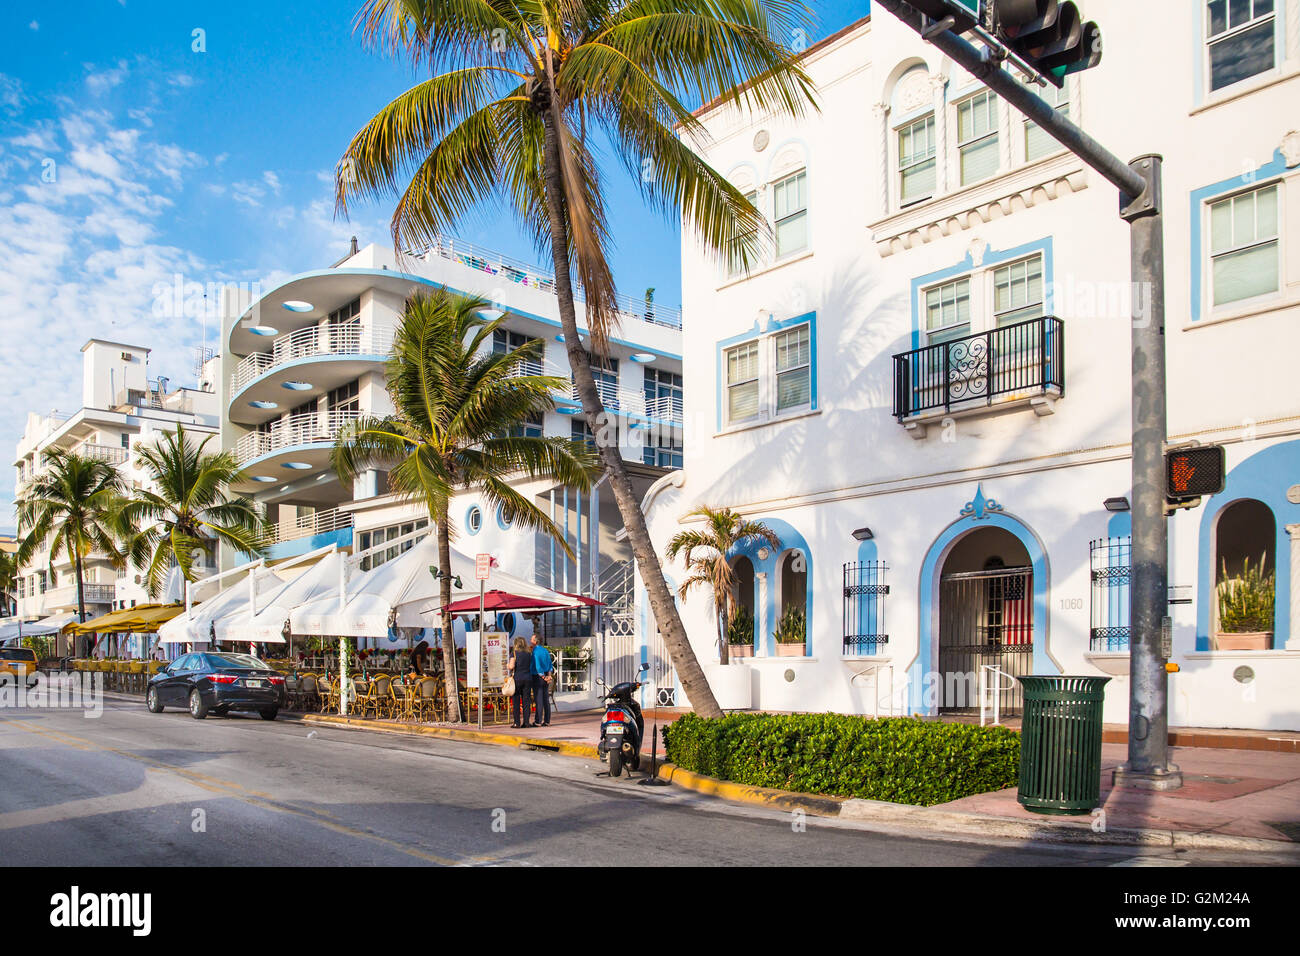 View of landmark hotel and restaurant along Ocean Drive in the Art Deco District of South Beach. - Stock Image